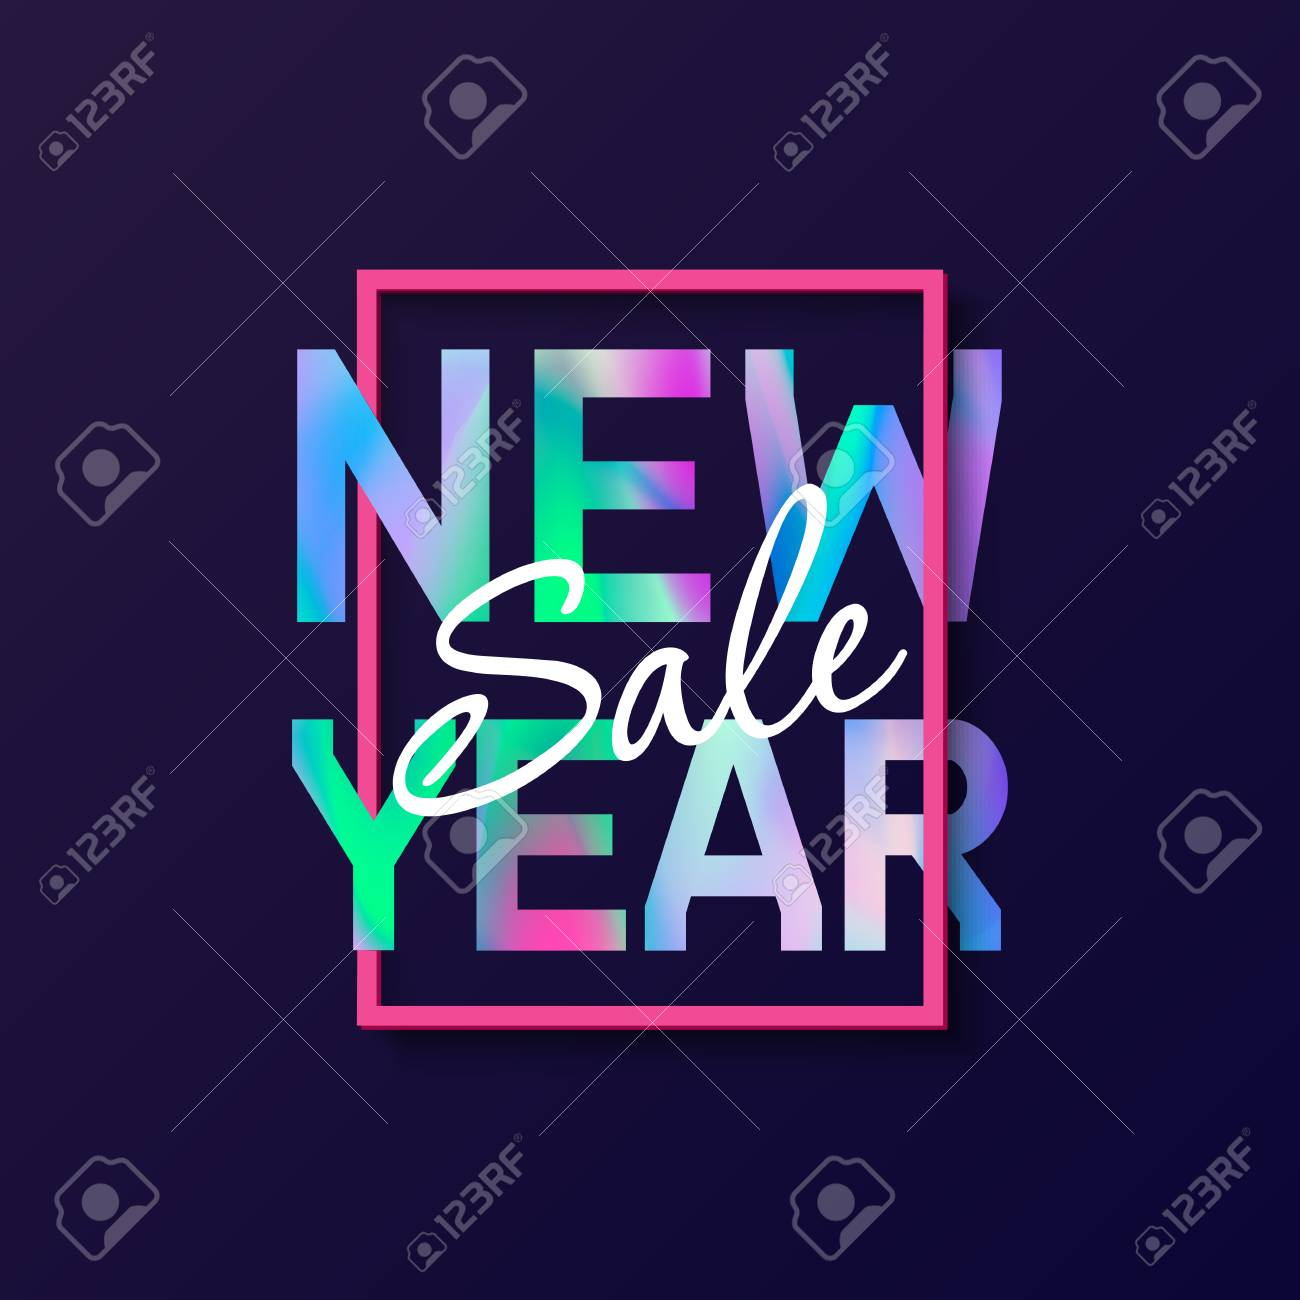 New Year 2018 Poster With Holographic Effect Text  Modern Creative     New Year 2018 Poster with holographic effect text  Modern creative concept  design for card